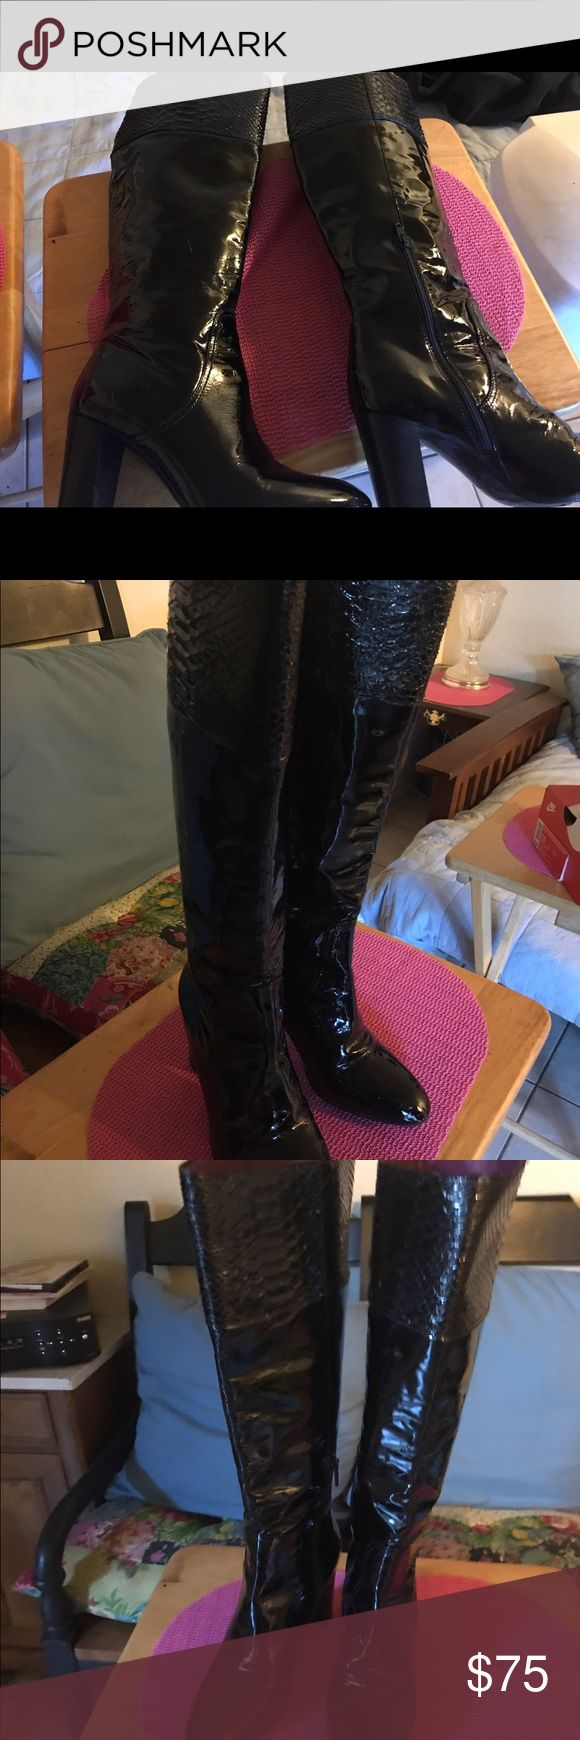 Coach Black Patent Leather Knee High Boots Black Patent Leather Boots. Good Condition. Size 8 Coach Shoes Heeled Boots